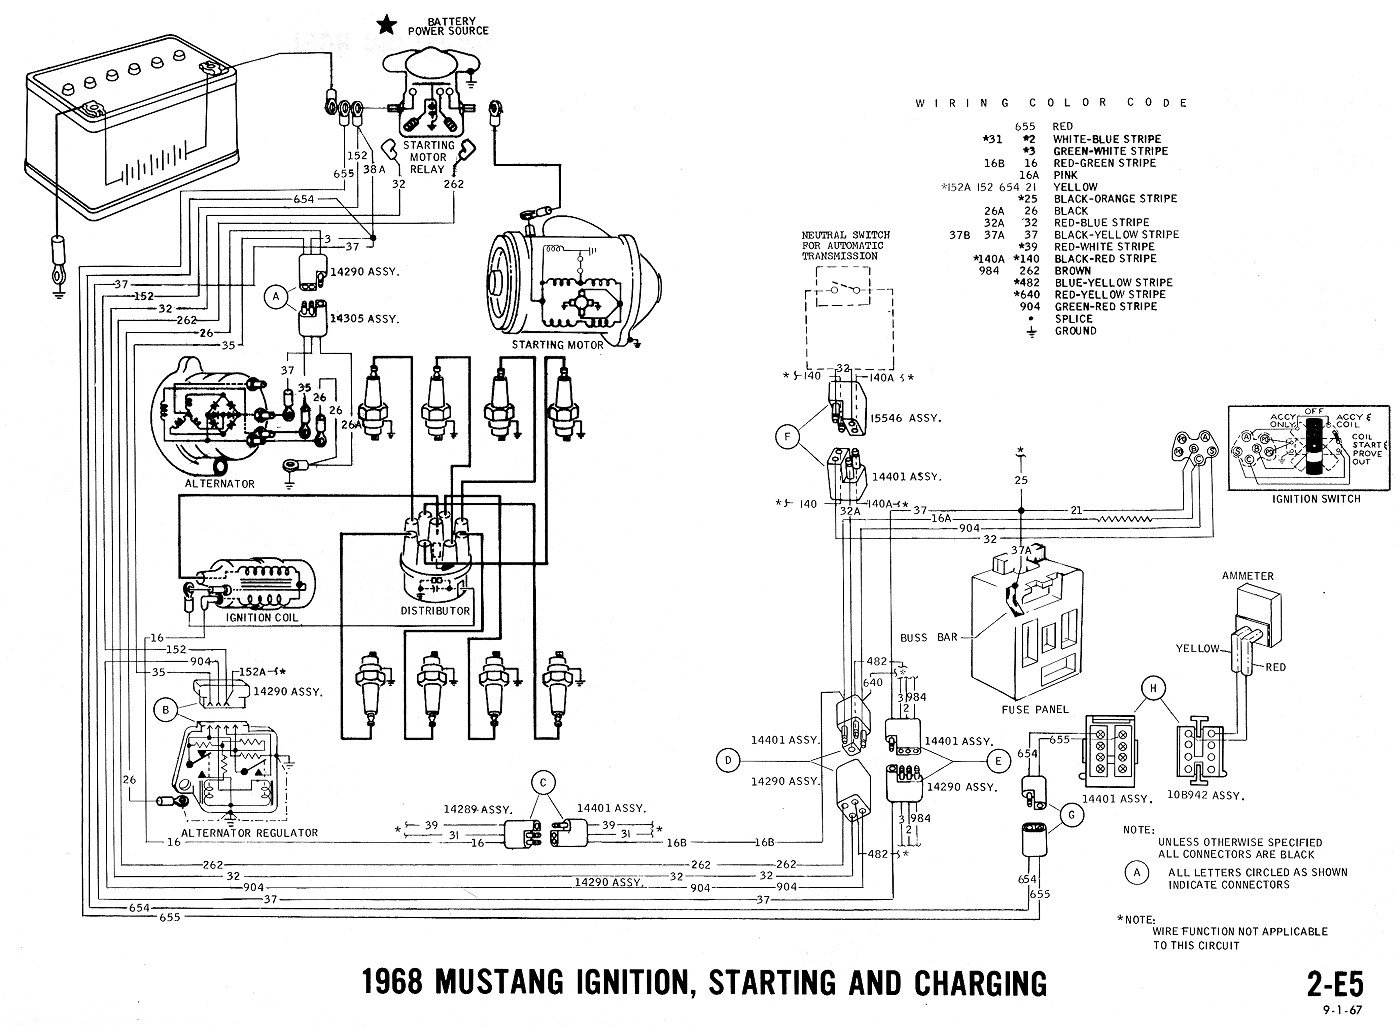 73 mustang fuse box diagram  | 472 x 479